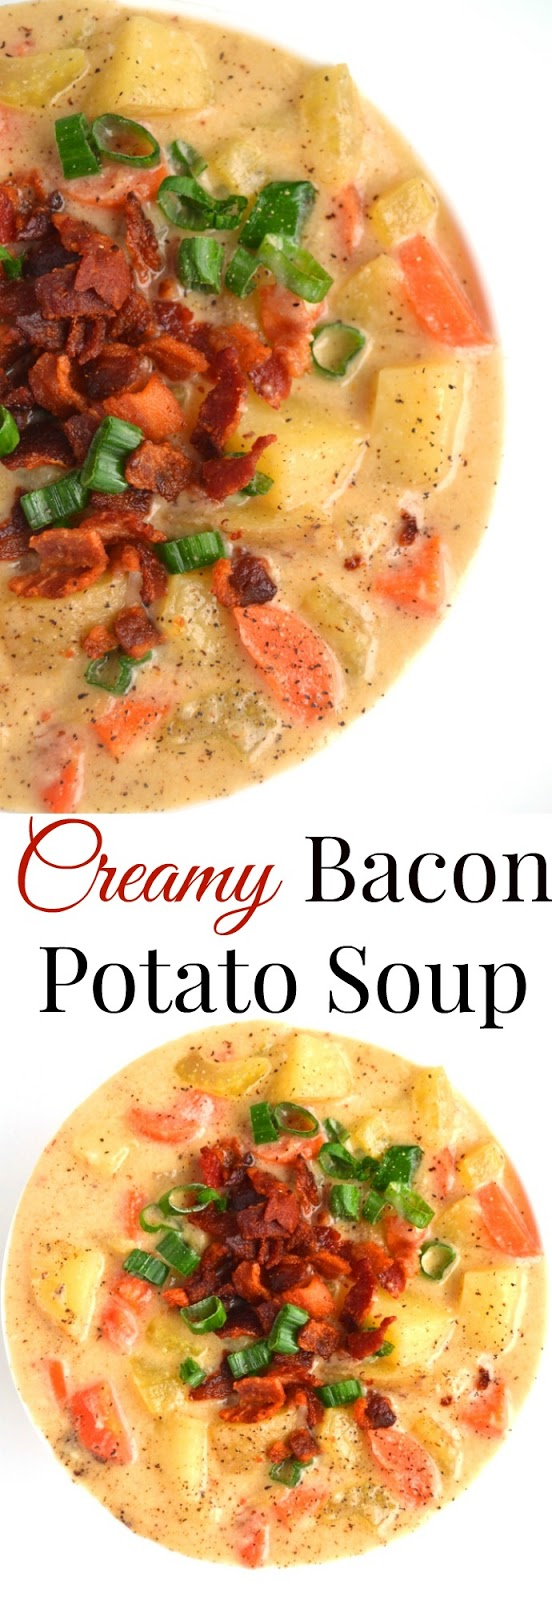 Creamy Bacon Potato Soup is tasty with flavors of bacon, cheddar cheese, green onions, carrots and celery. Made lighter with milk instead of cream and Greek yogurt for a hearty yet nutritious meal! www.nutritionistreviews.com